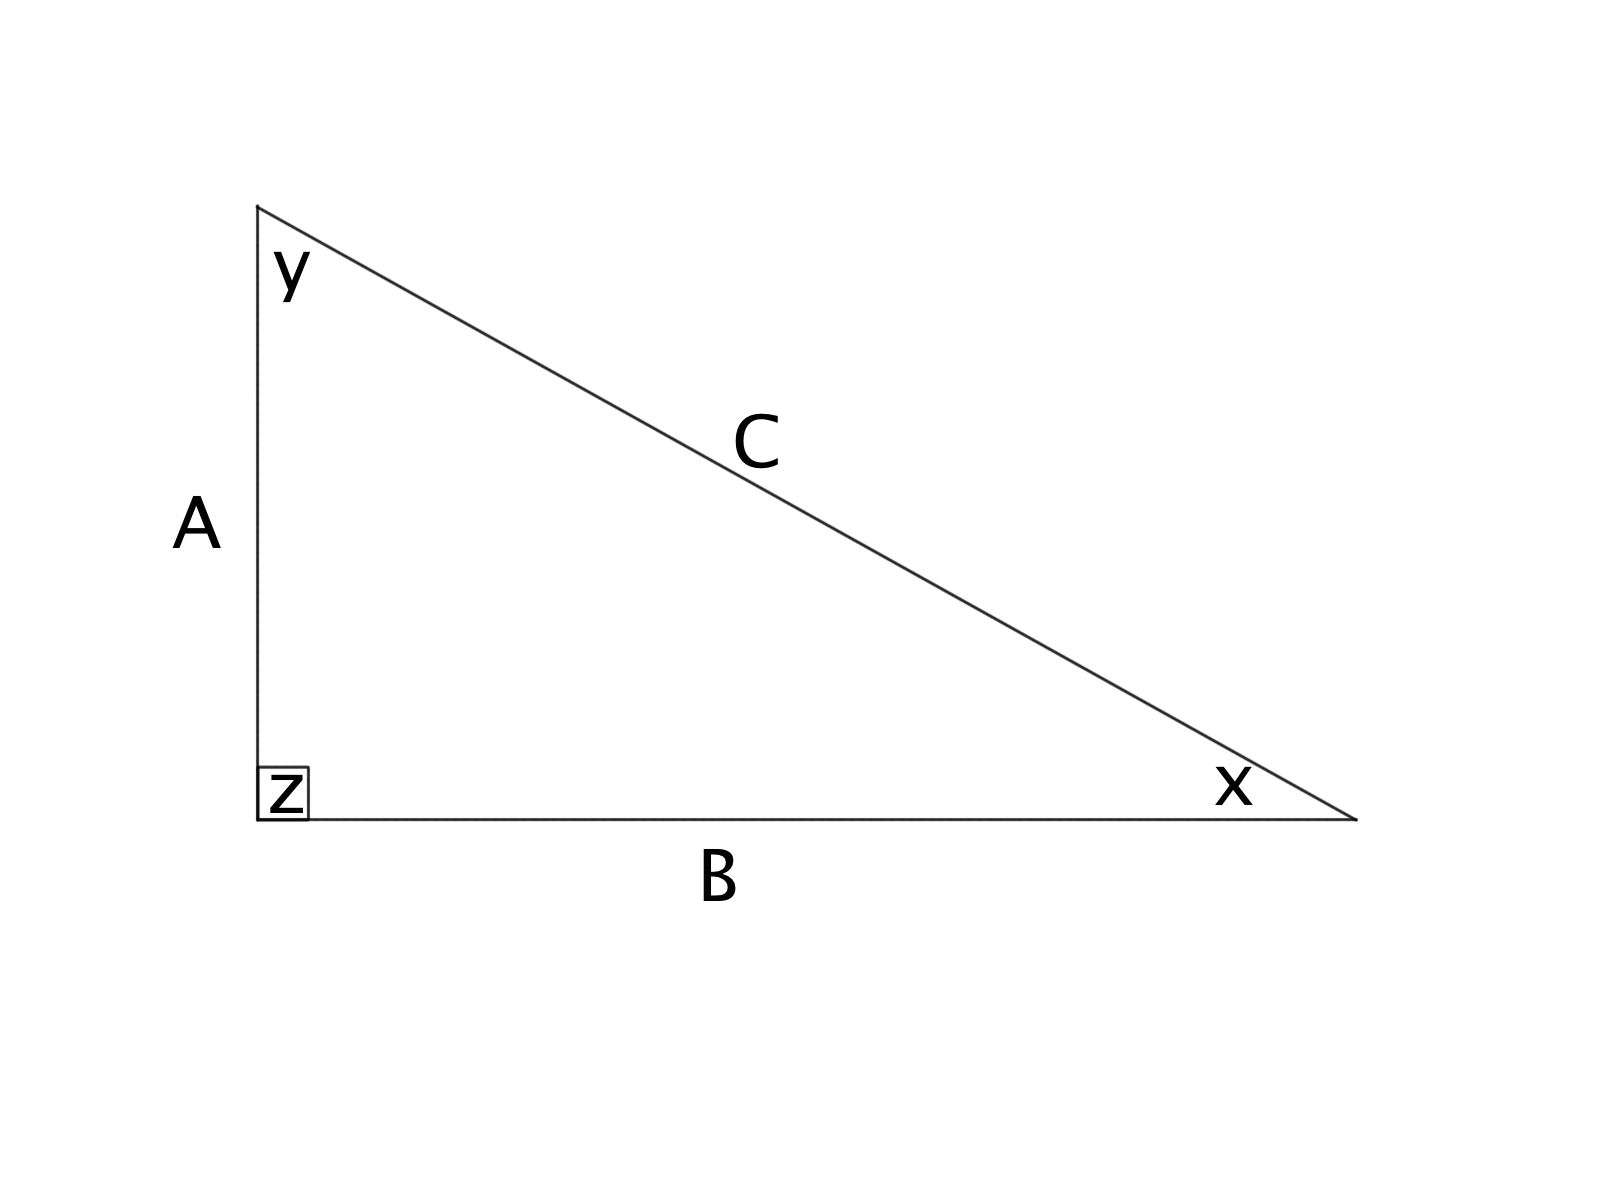 How To Find The Perimeter Of A Right Triangle